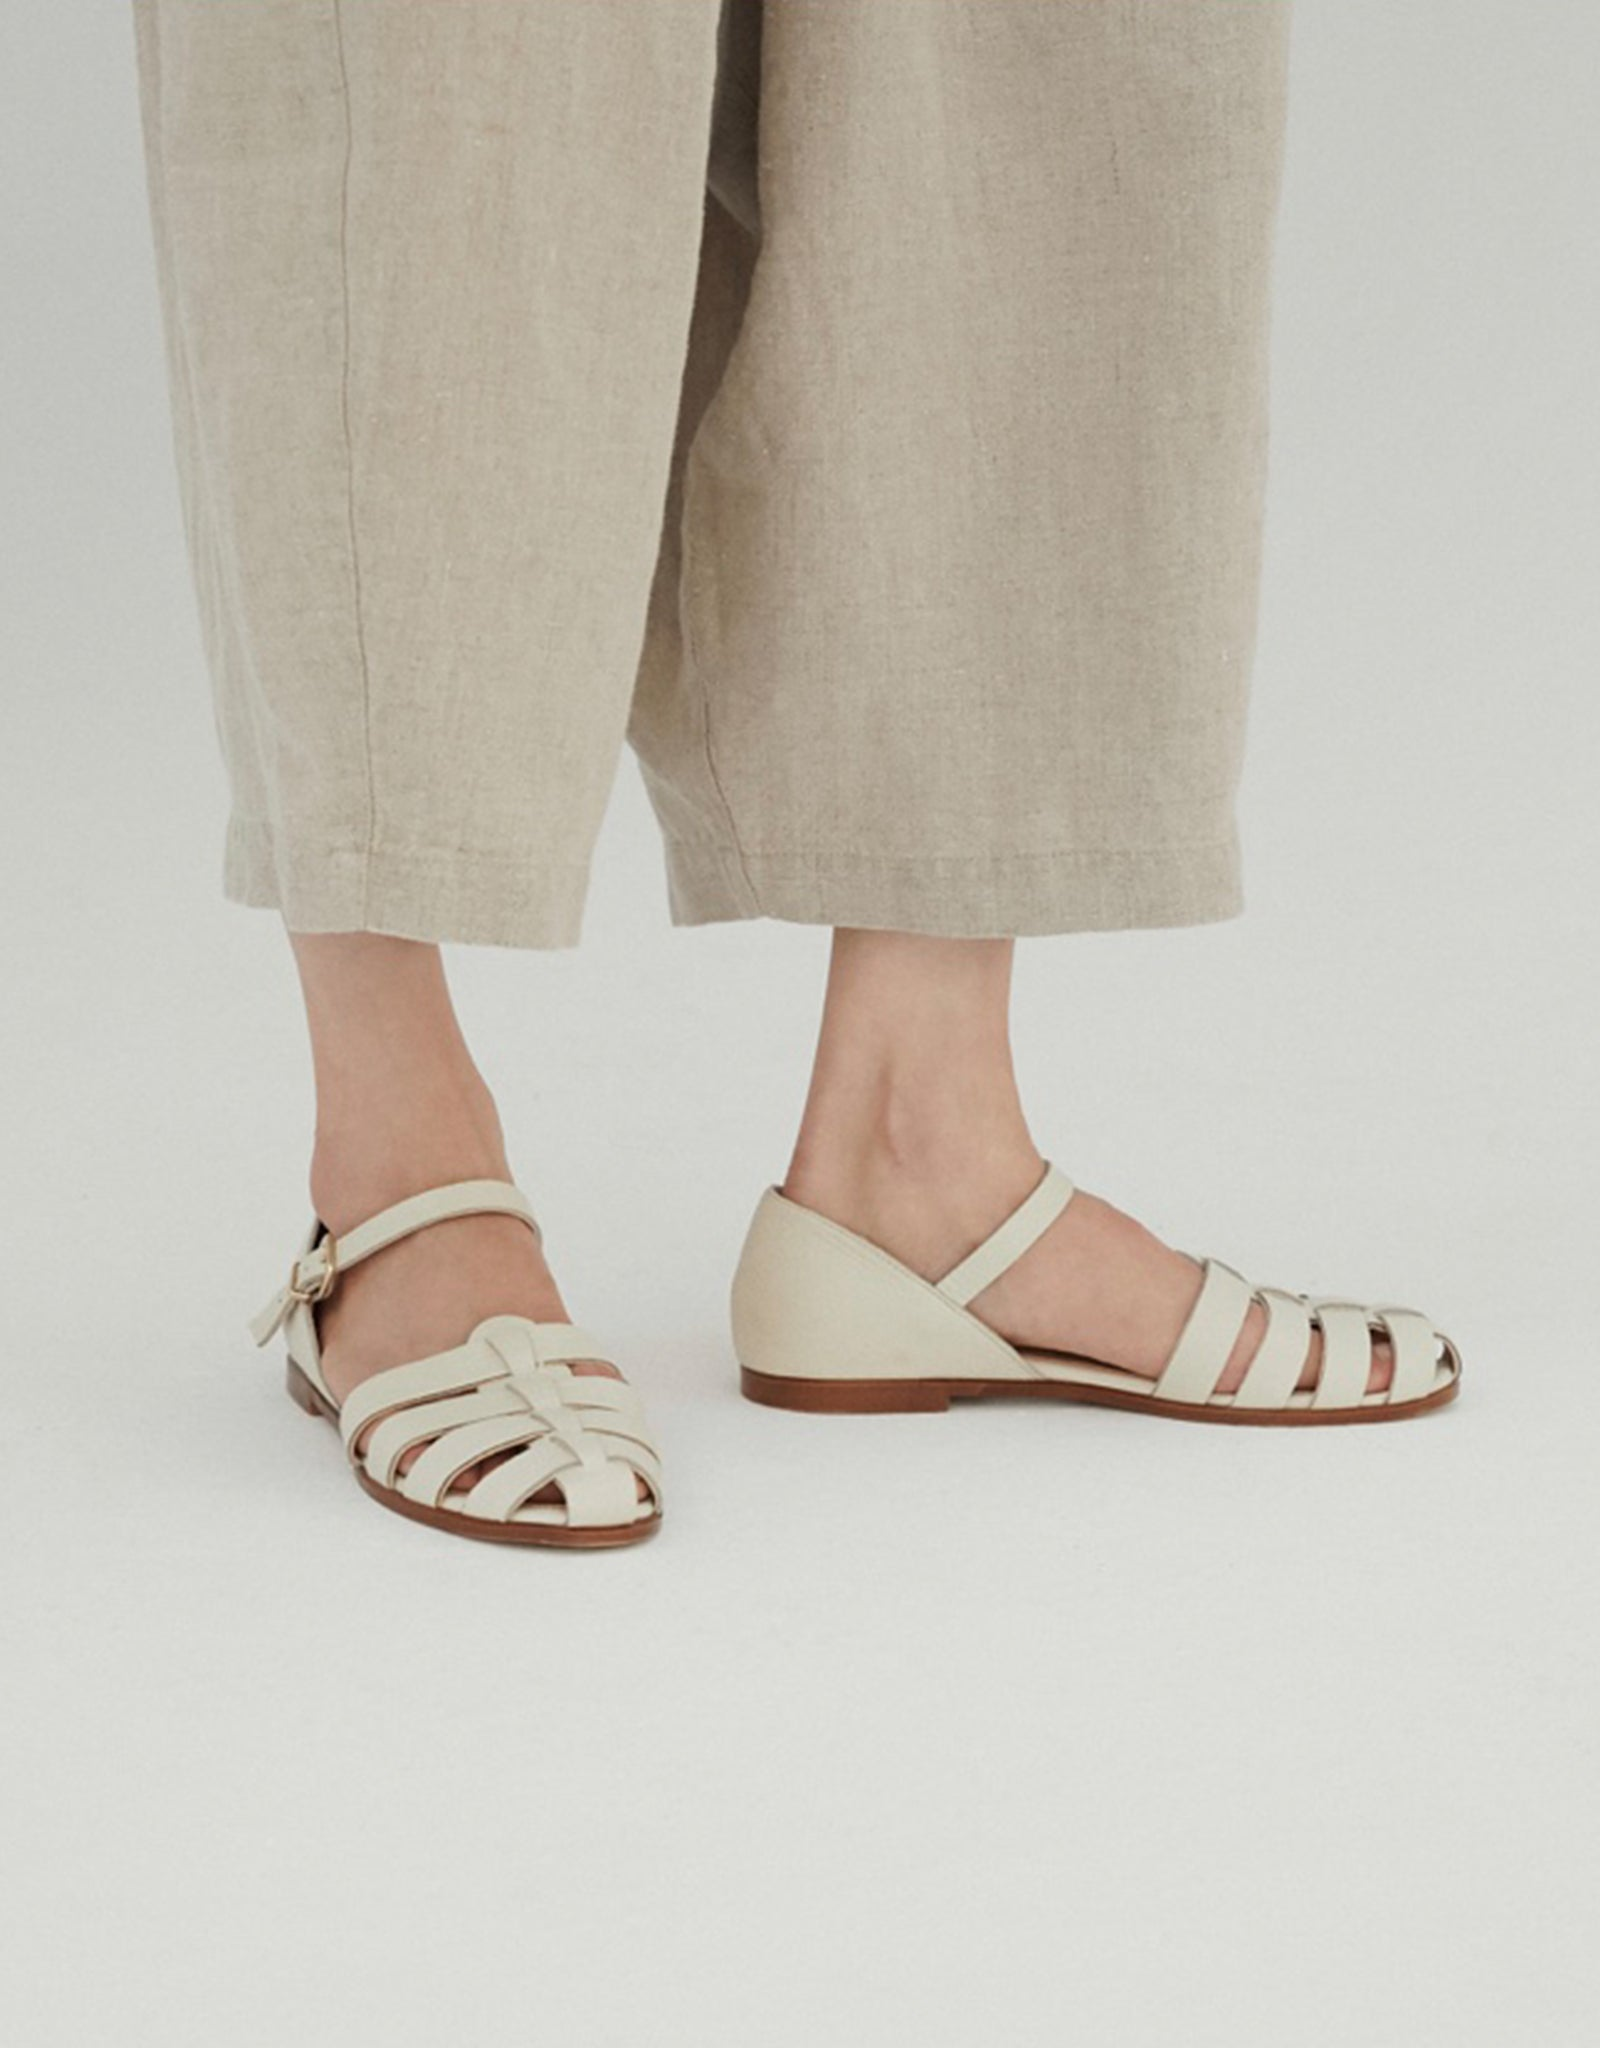 Close up of Monica Cordera Leather Jelly Sandals in Ivory.  Available at FAWN Toronto.